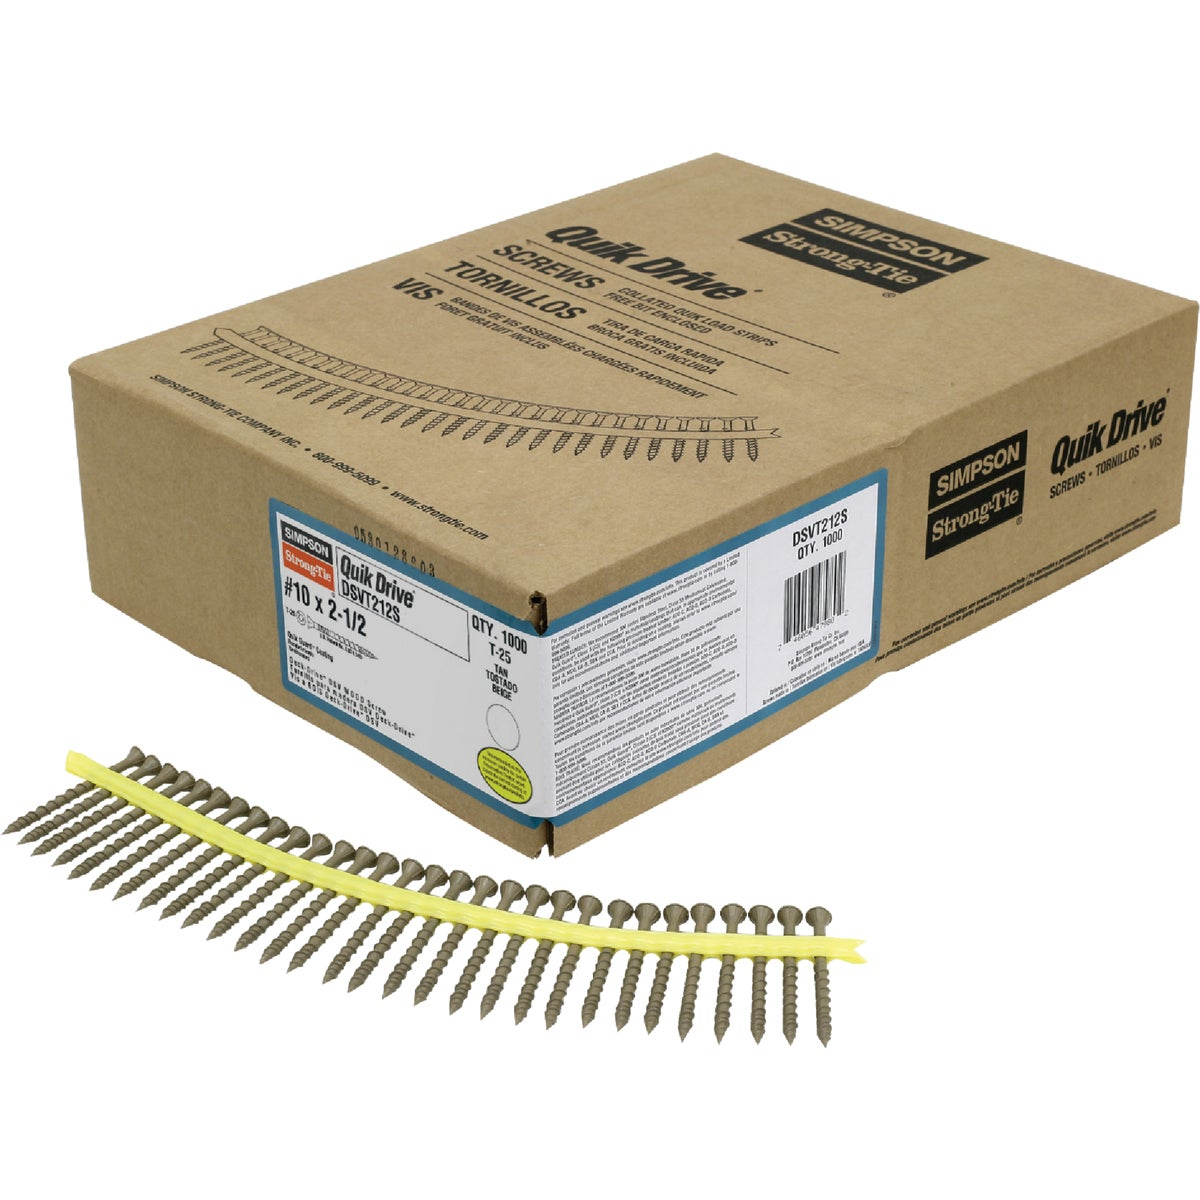 Quik Drive WSNTLG212S Deck and Dock 212-Inch Screws with N2000 Corrosion Prot...